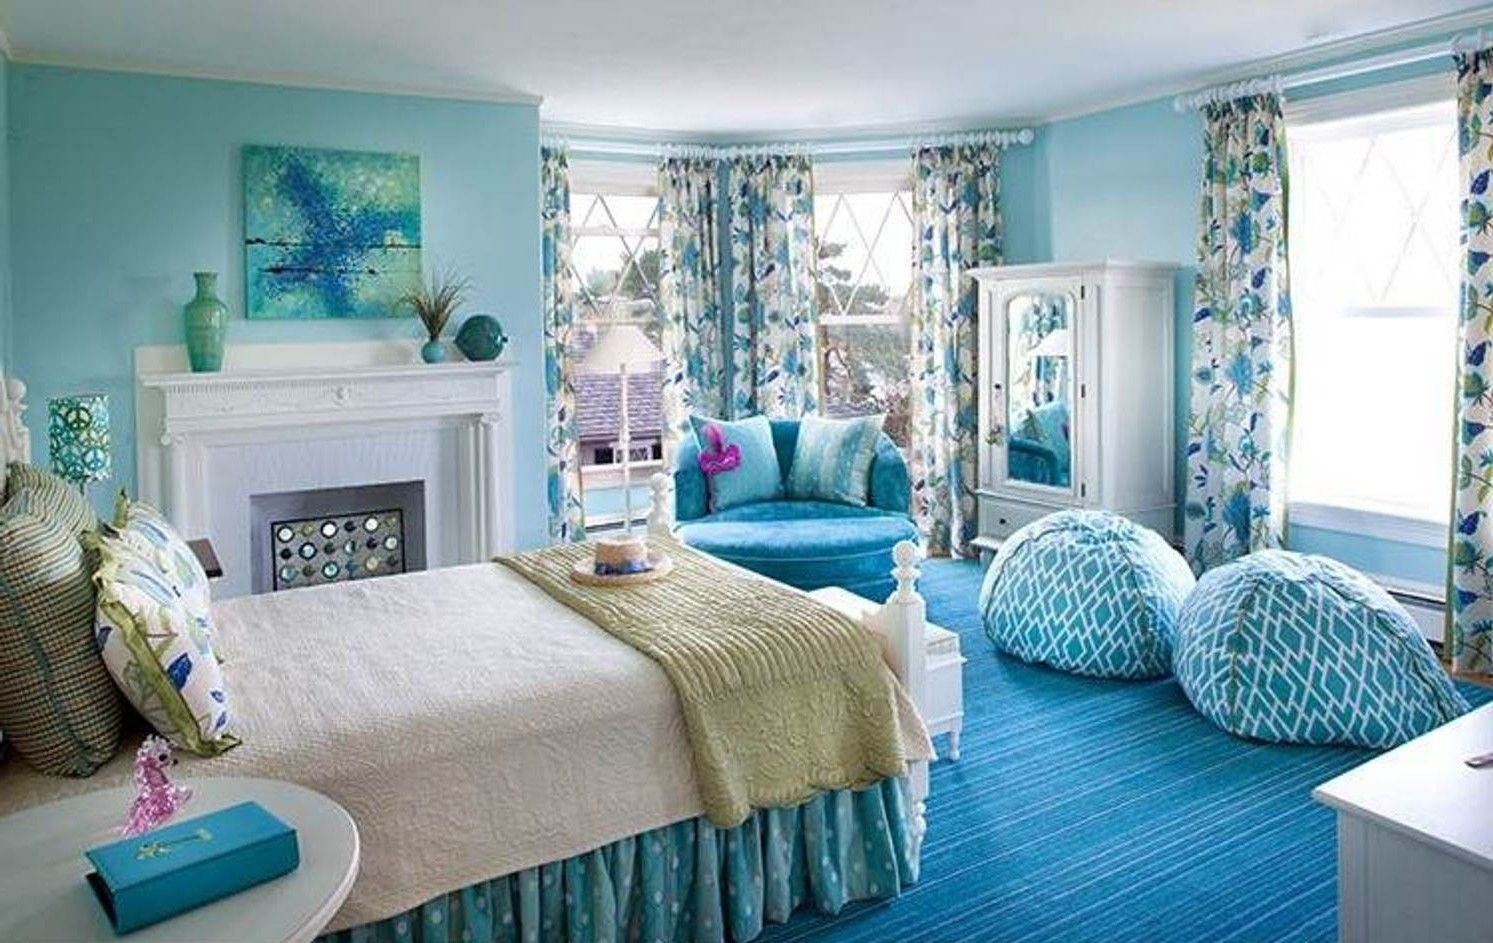 bedroom ideas for teenage girls with medium sized rooms - Google Search  Dormitorios